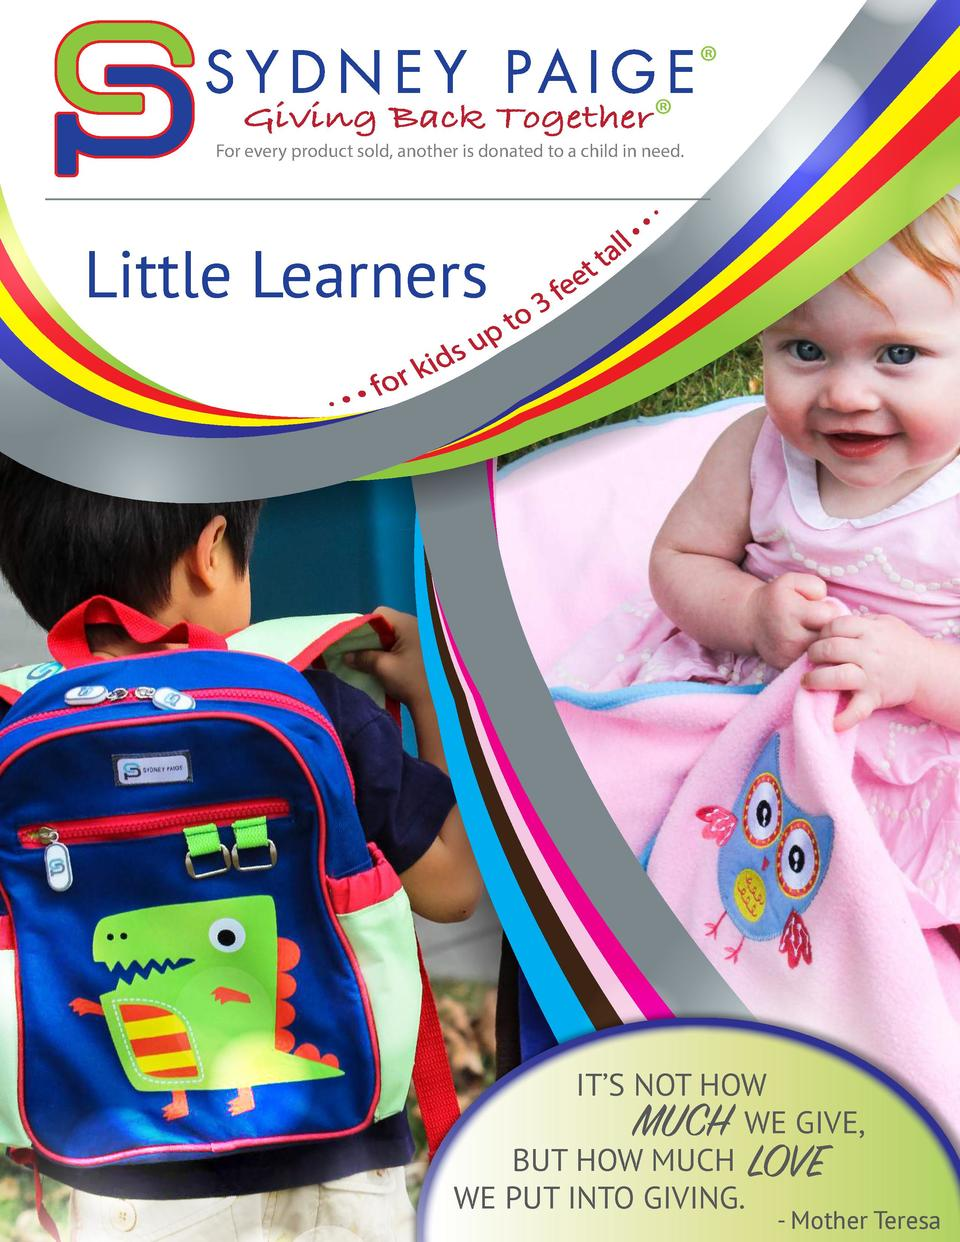 Giving Back Together         For every product sold, another is donated to a child in need.  Little Learners  IT   S NOT H...